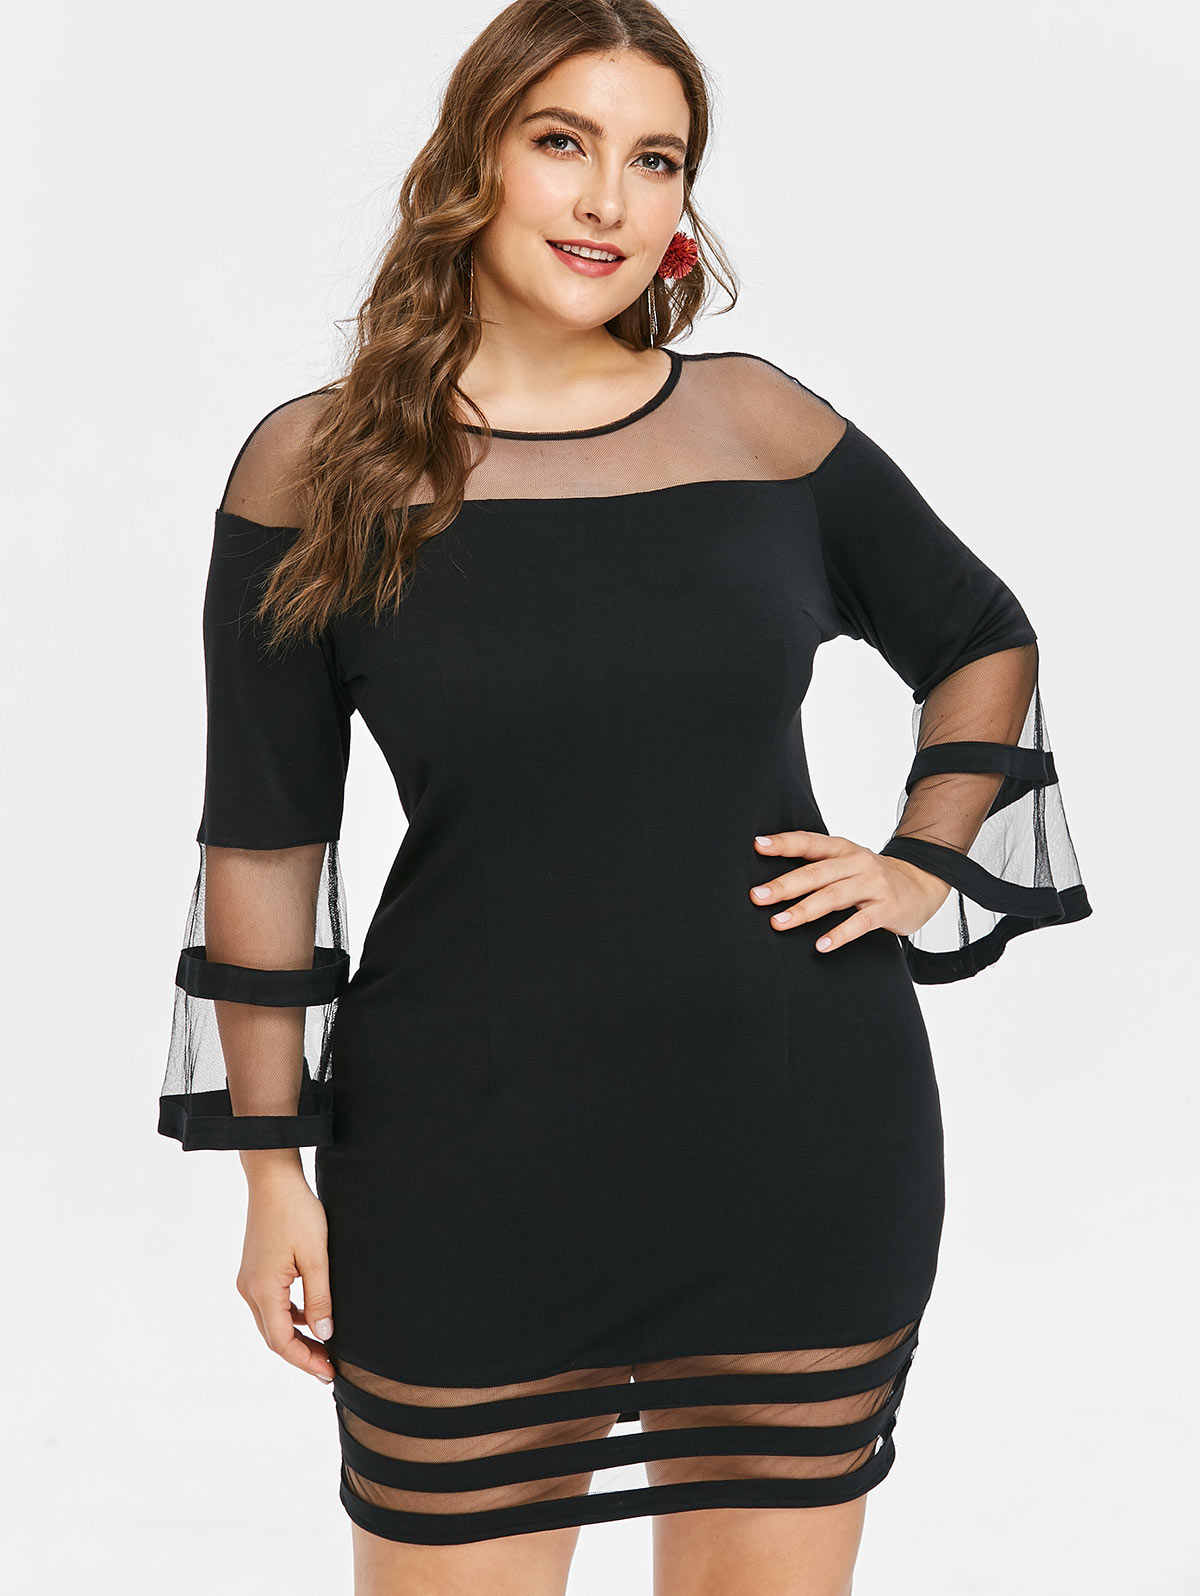 Wipalo Plus Size 5XL Flare Sleeve Mesh Yoke Dress Casual Solid Round Collar  Bodycon Mini Dress 5b65f32b43ec